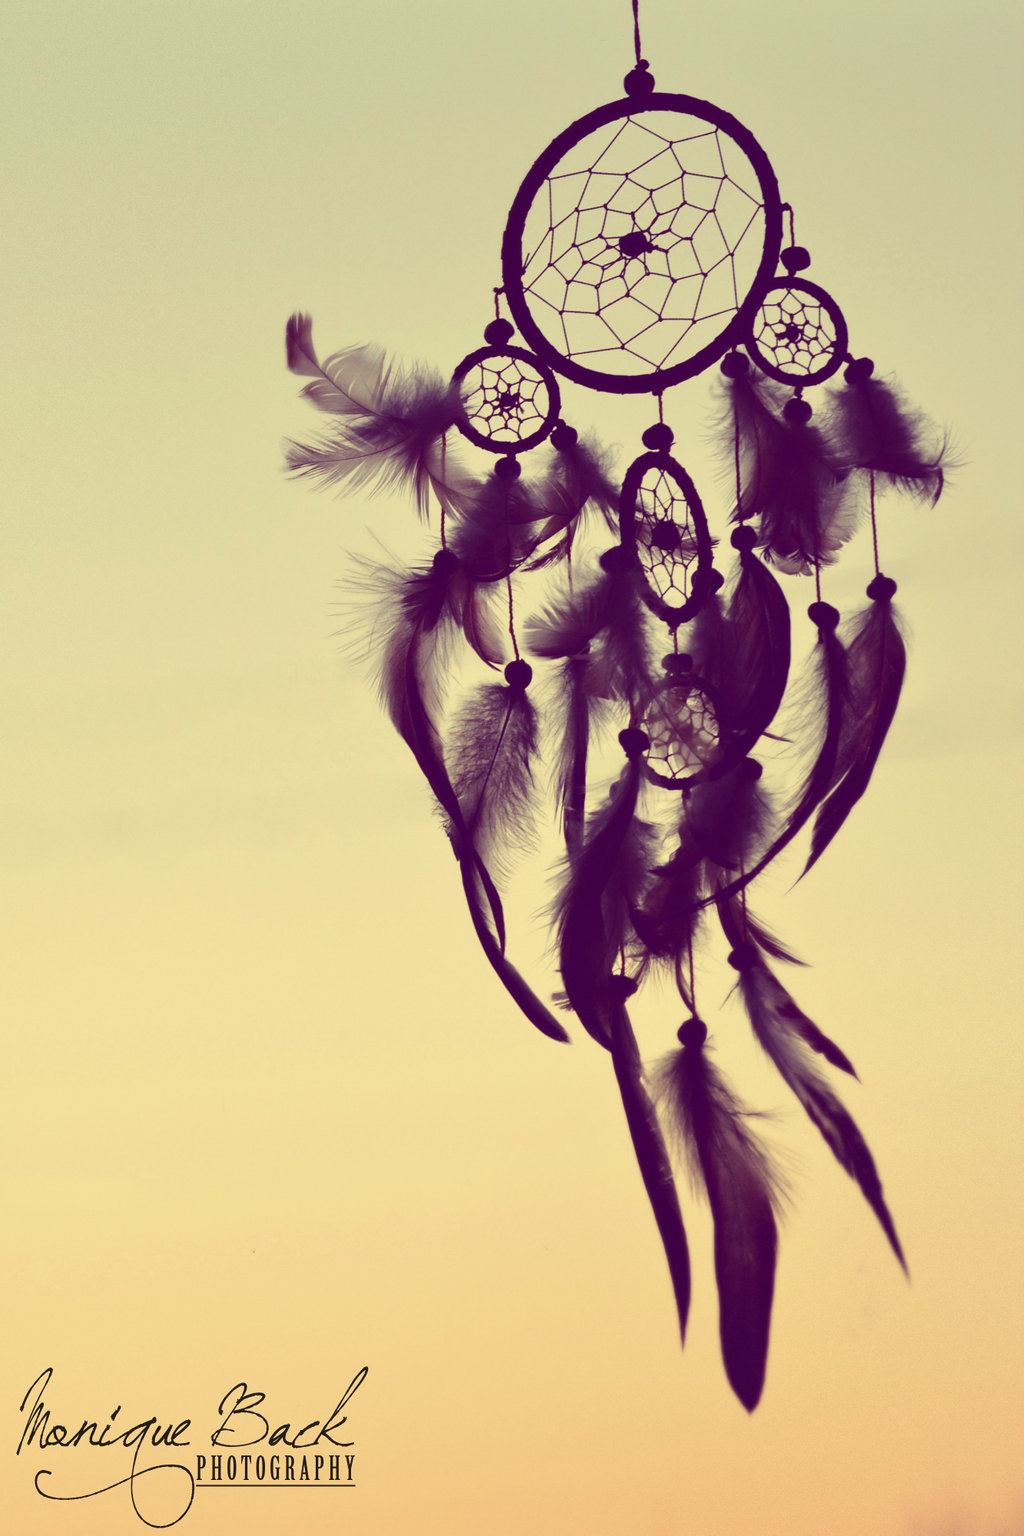 Dreamcatcher wallpapers wallpaper 1024x1536 voltagebd Images